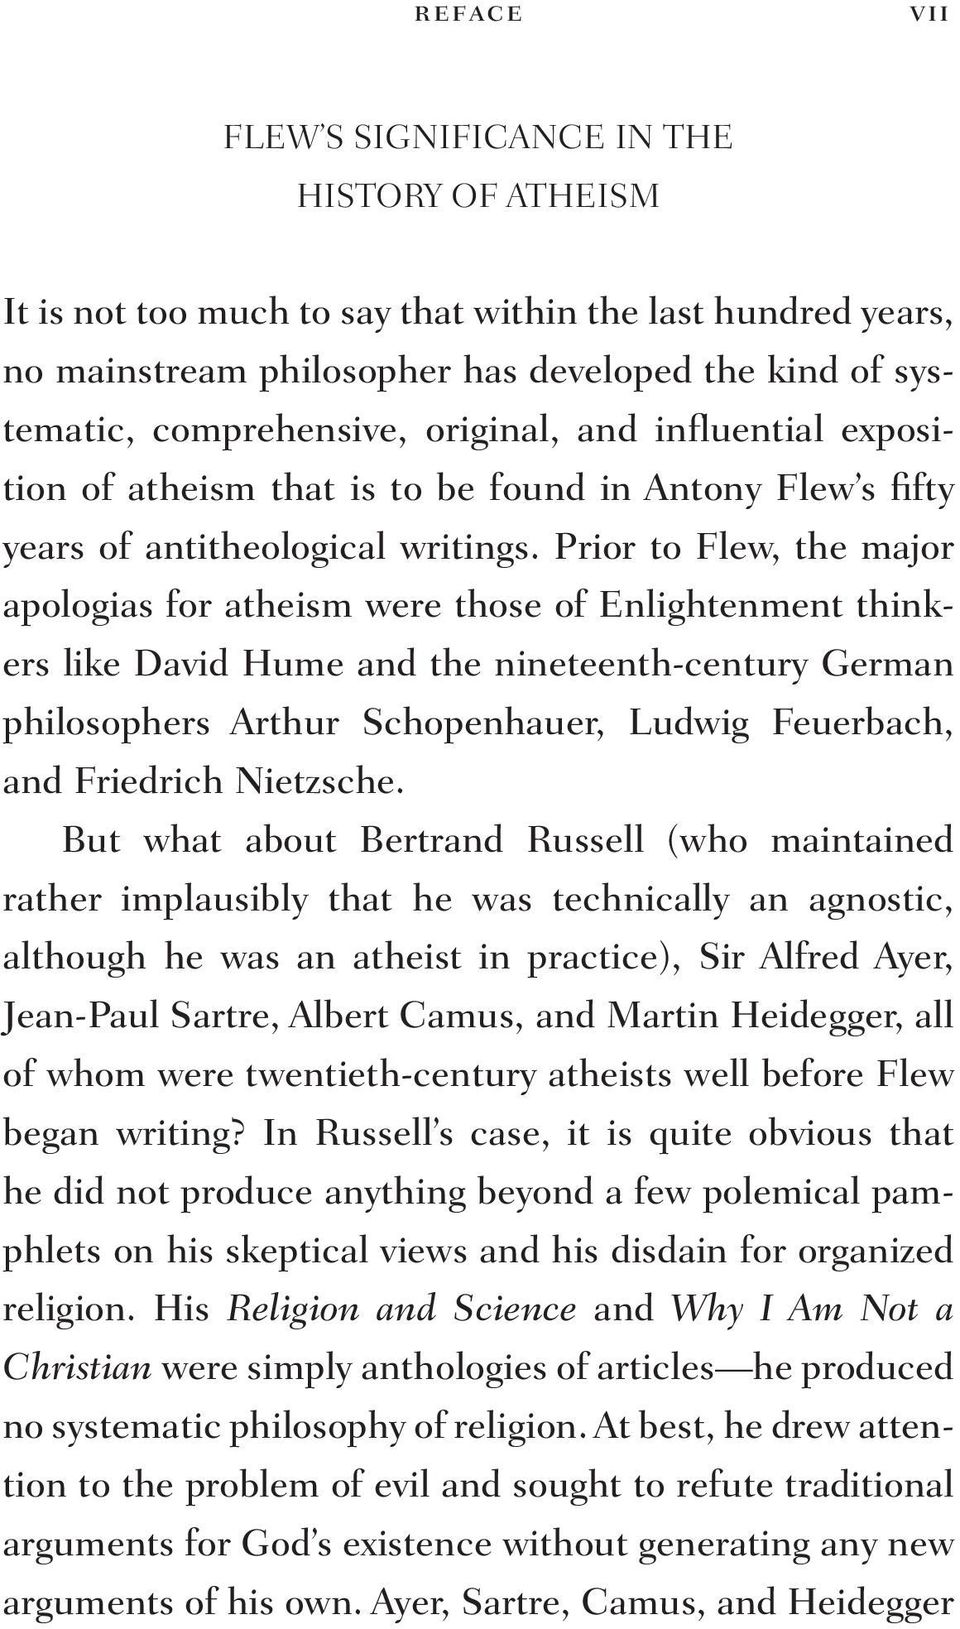 Prior to Flew, the major apologias for atheism were those of Enlightenment thinkers like David Hume and the nineteenth-century German philosophers Arthur Schopenhauer, Ludwig Feuerbach, and Friedrich